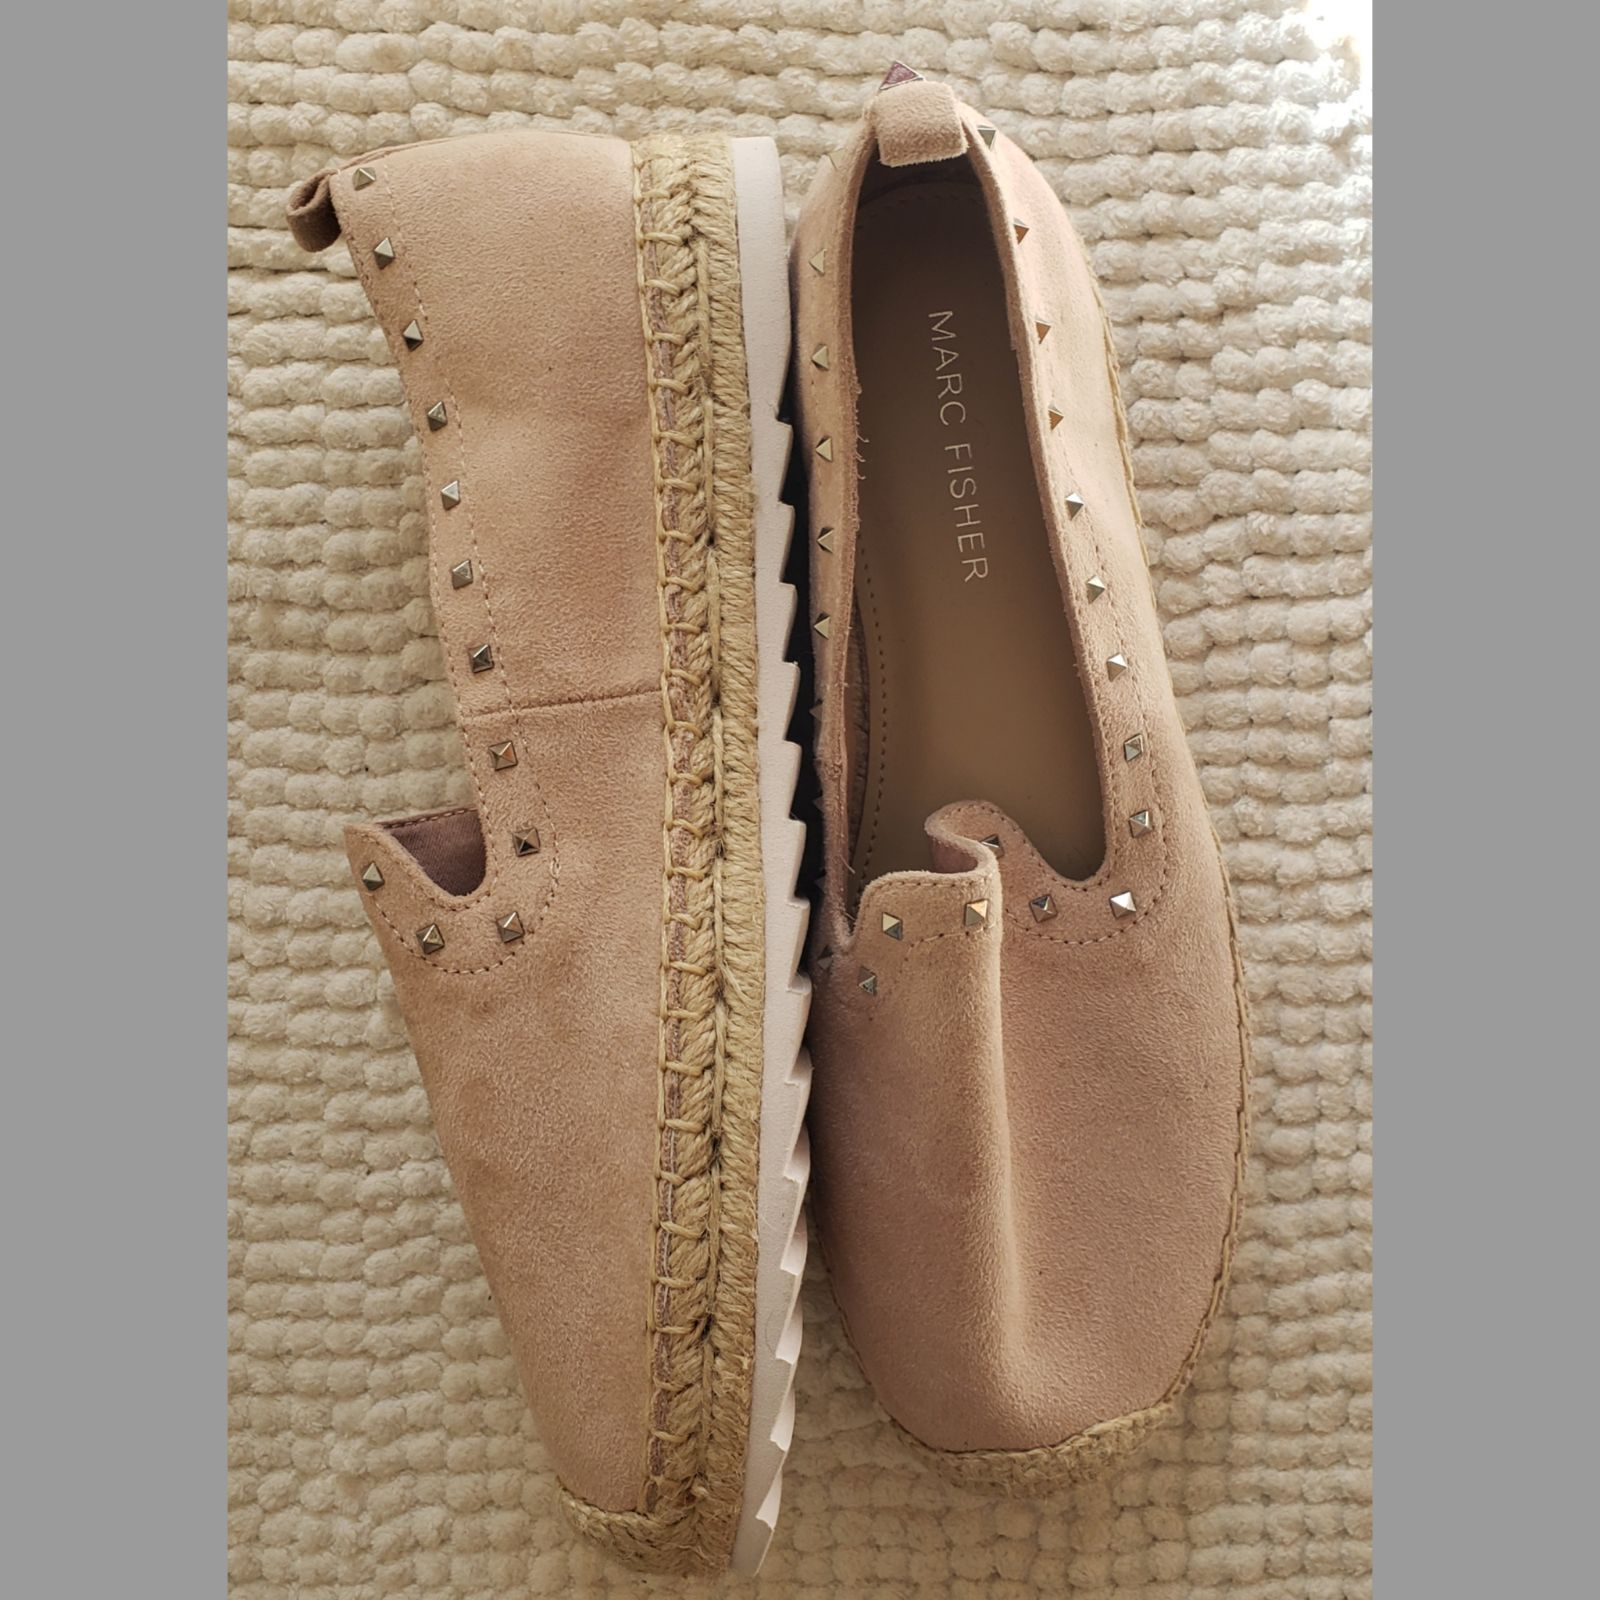 NWOT Marc jacobs pink studded shoes 7.5